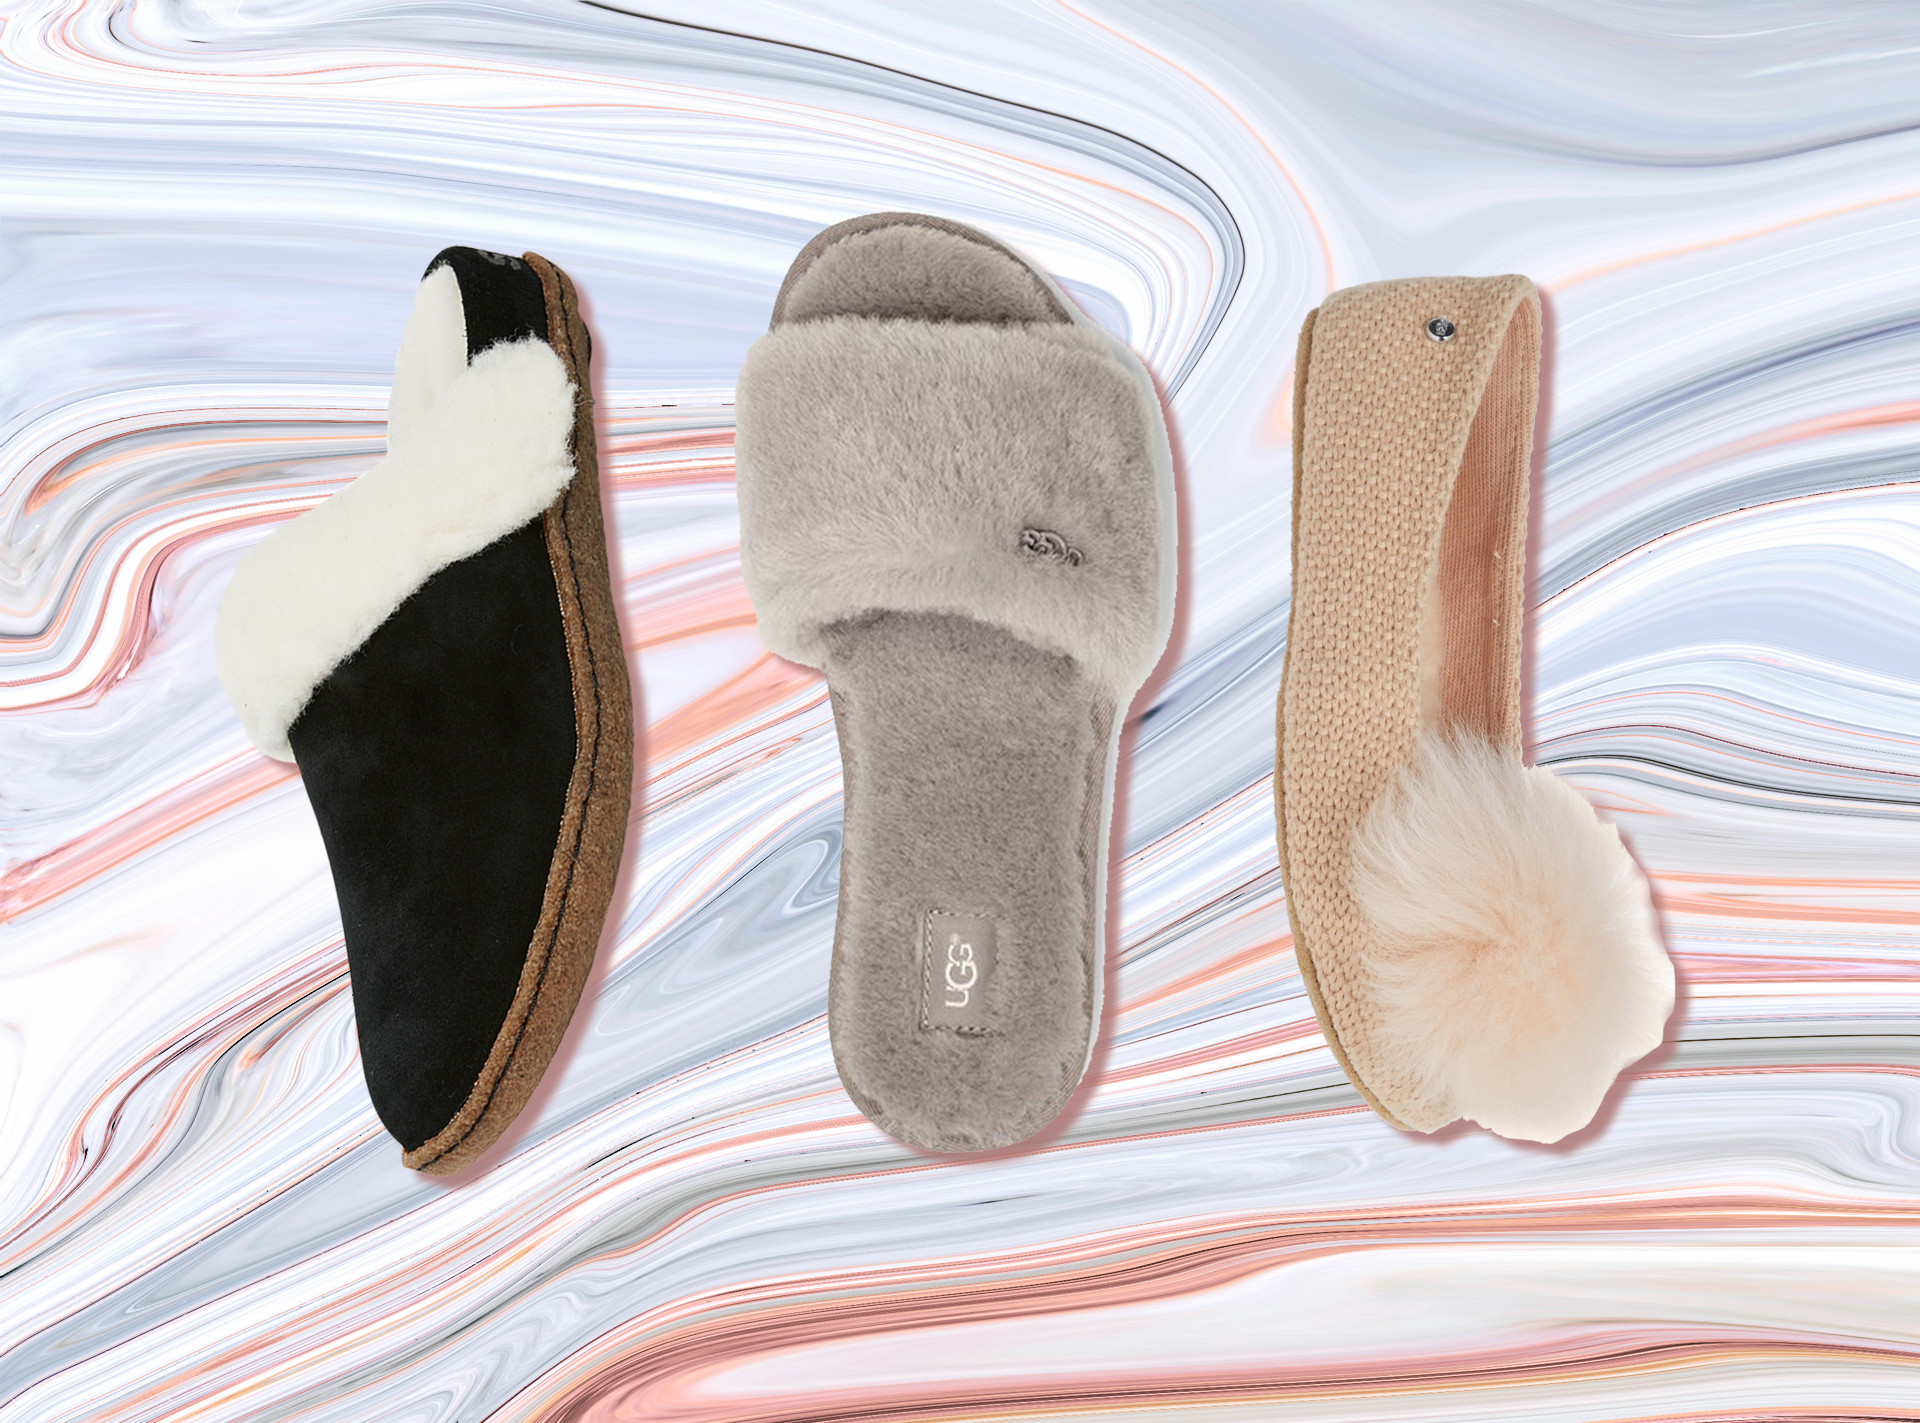 5163f351a48 Slippers You Can Actually Wear Outside | E! News Canada